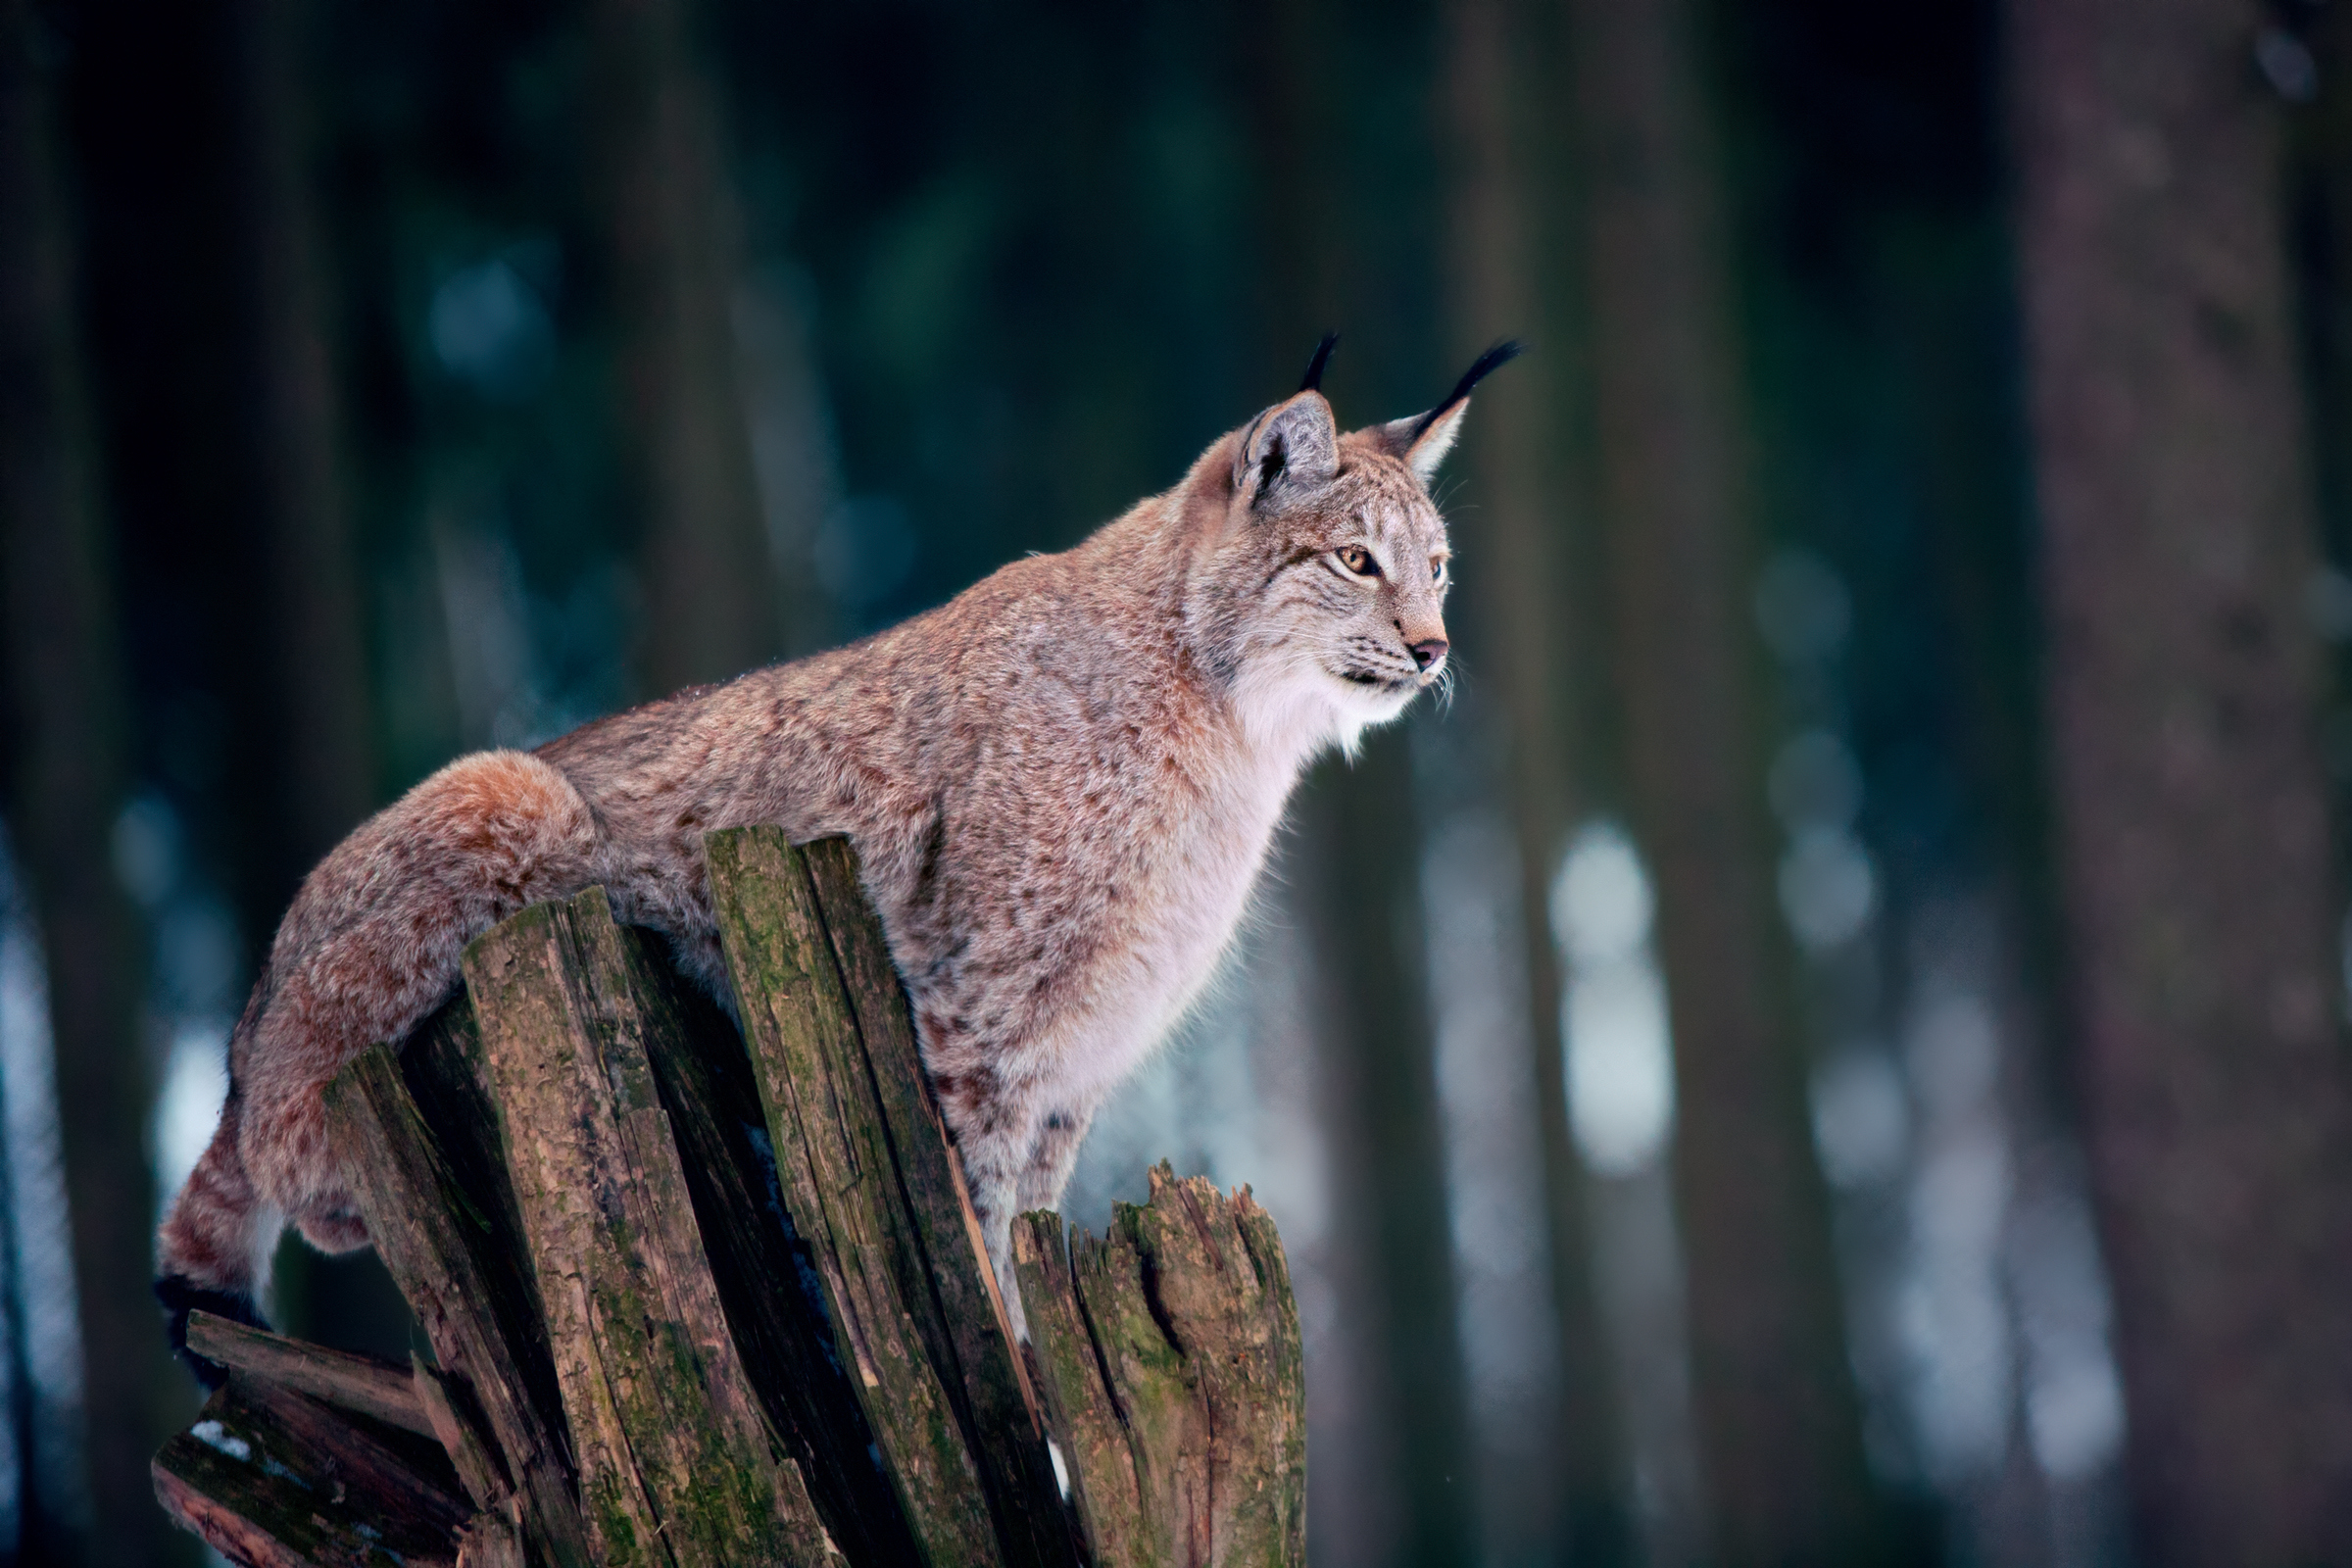 The decision on lynx release is due over the coming months